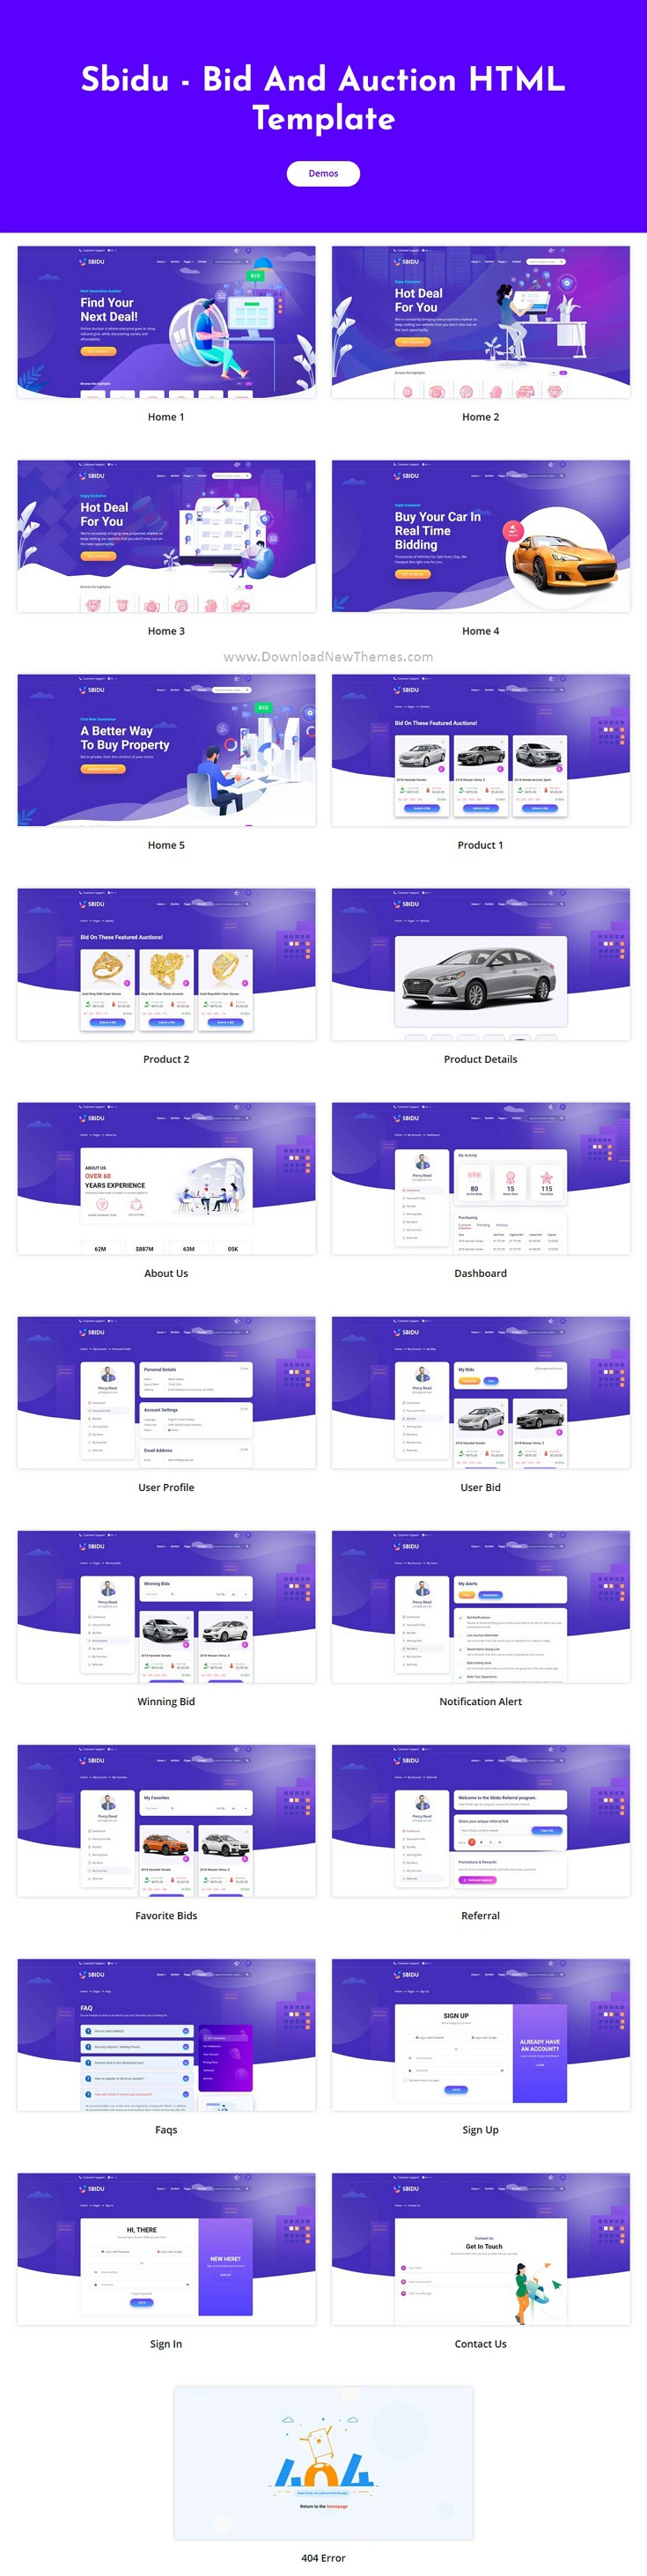 Bid And Auction Website Template